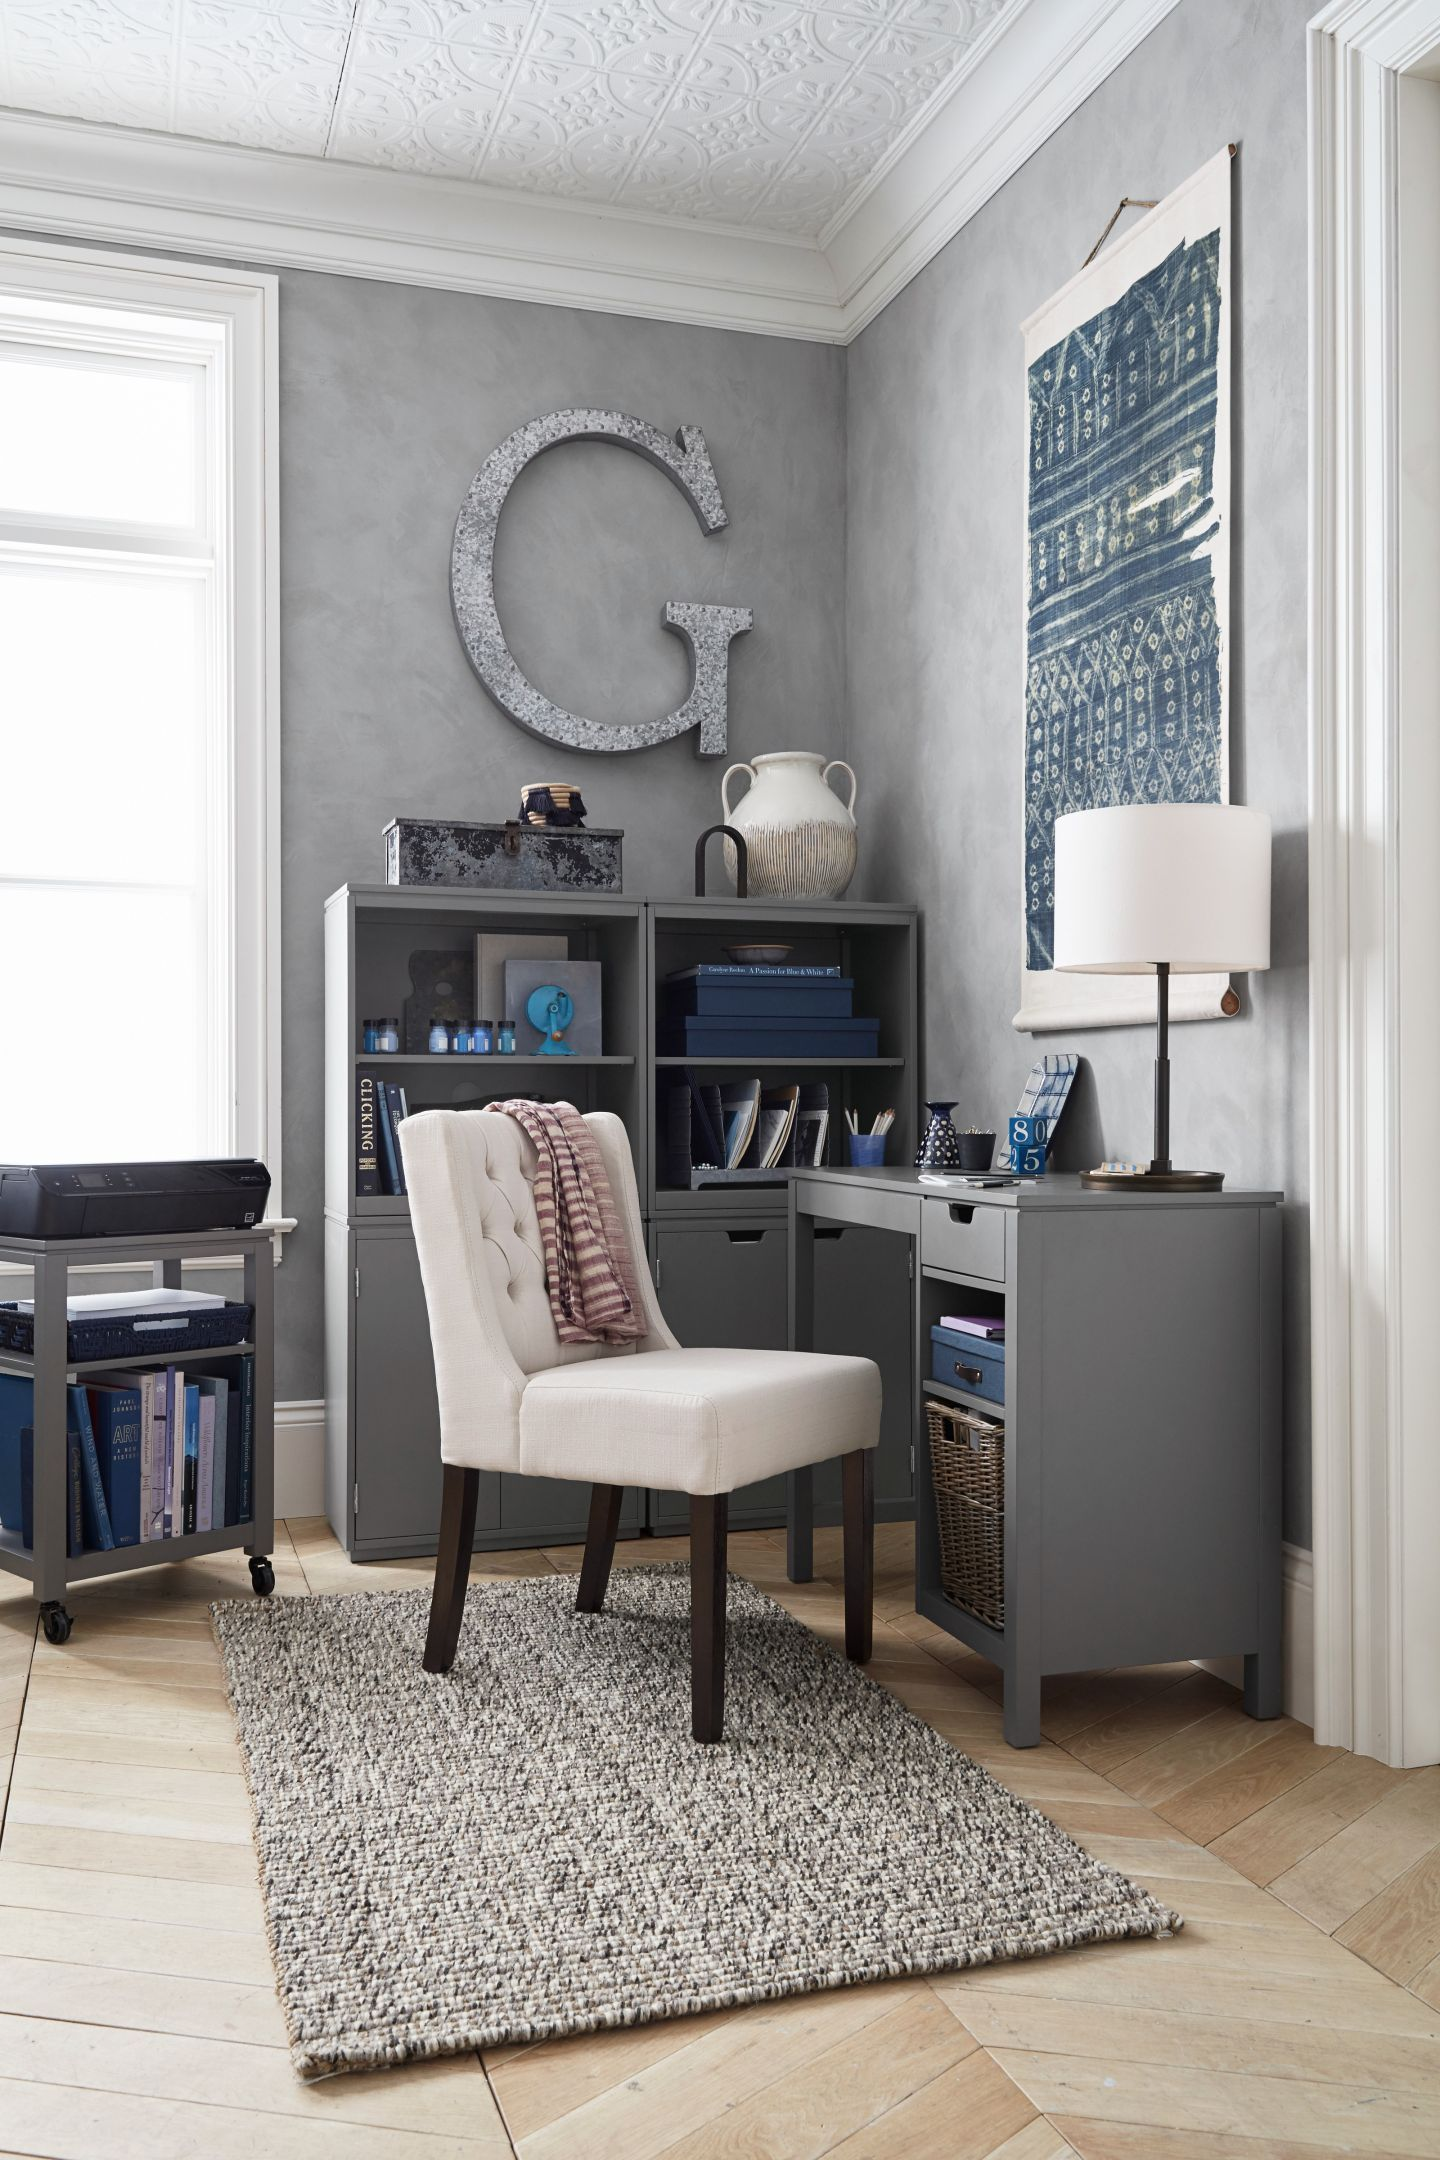 Incroyable Pottery Barn Small Spaces New Furniture Collection